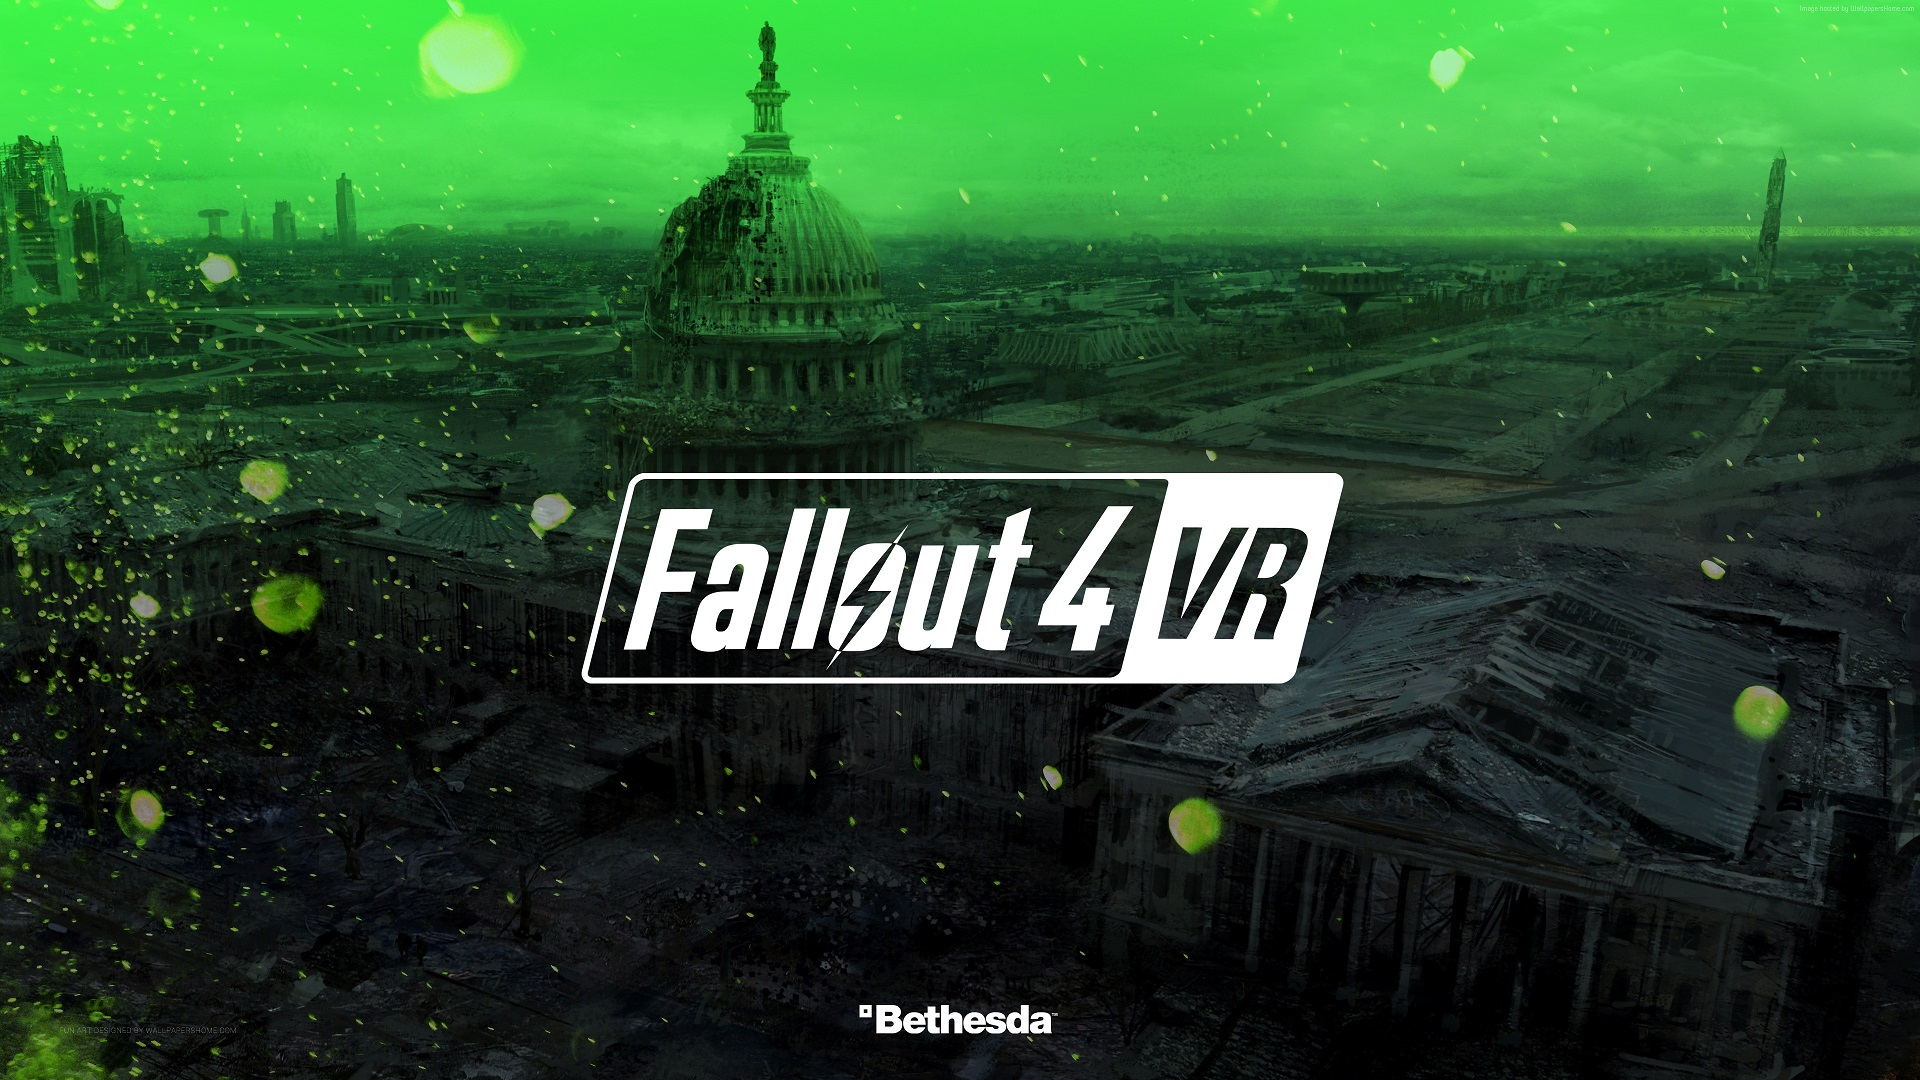 VR Event Booth Games: Fallout 4 VR Review